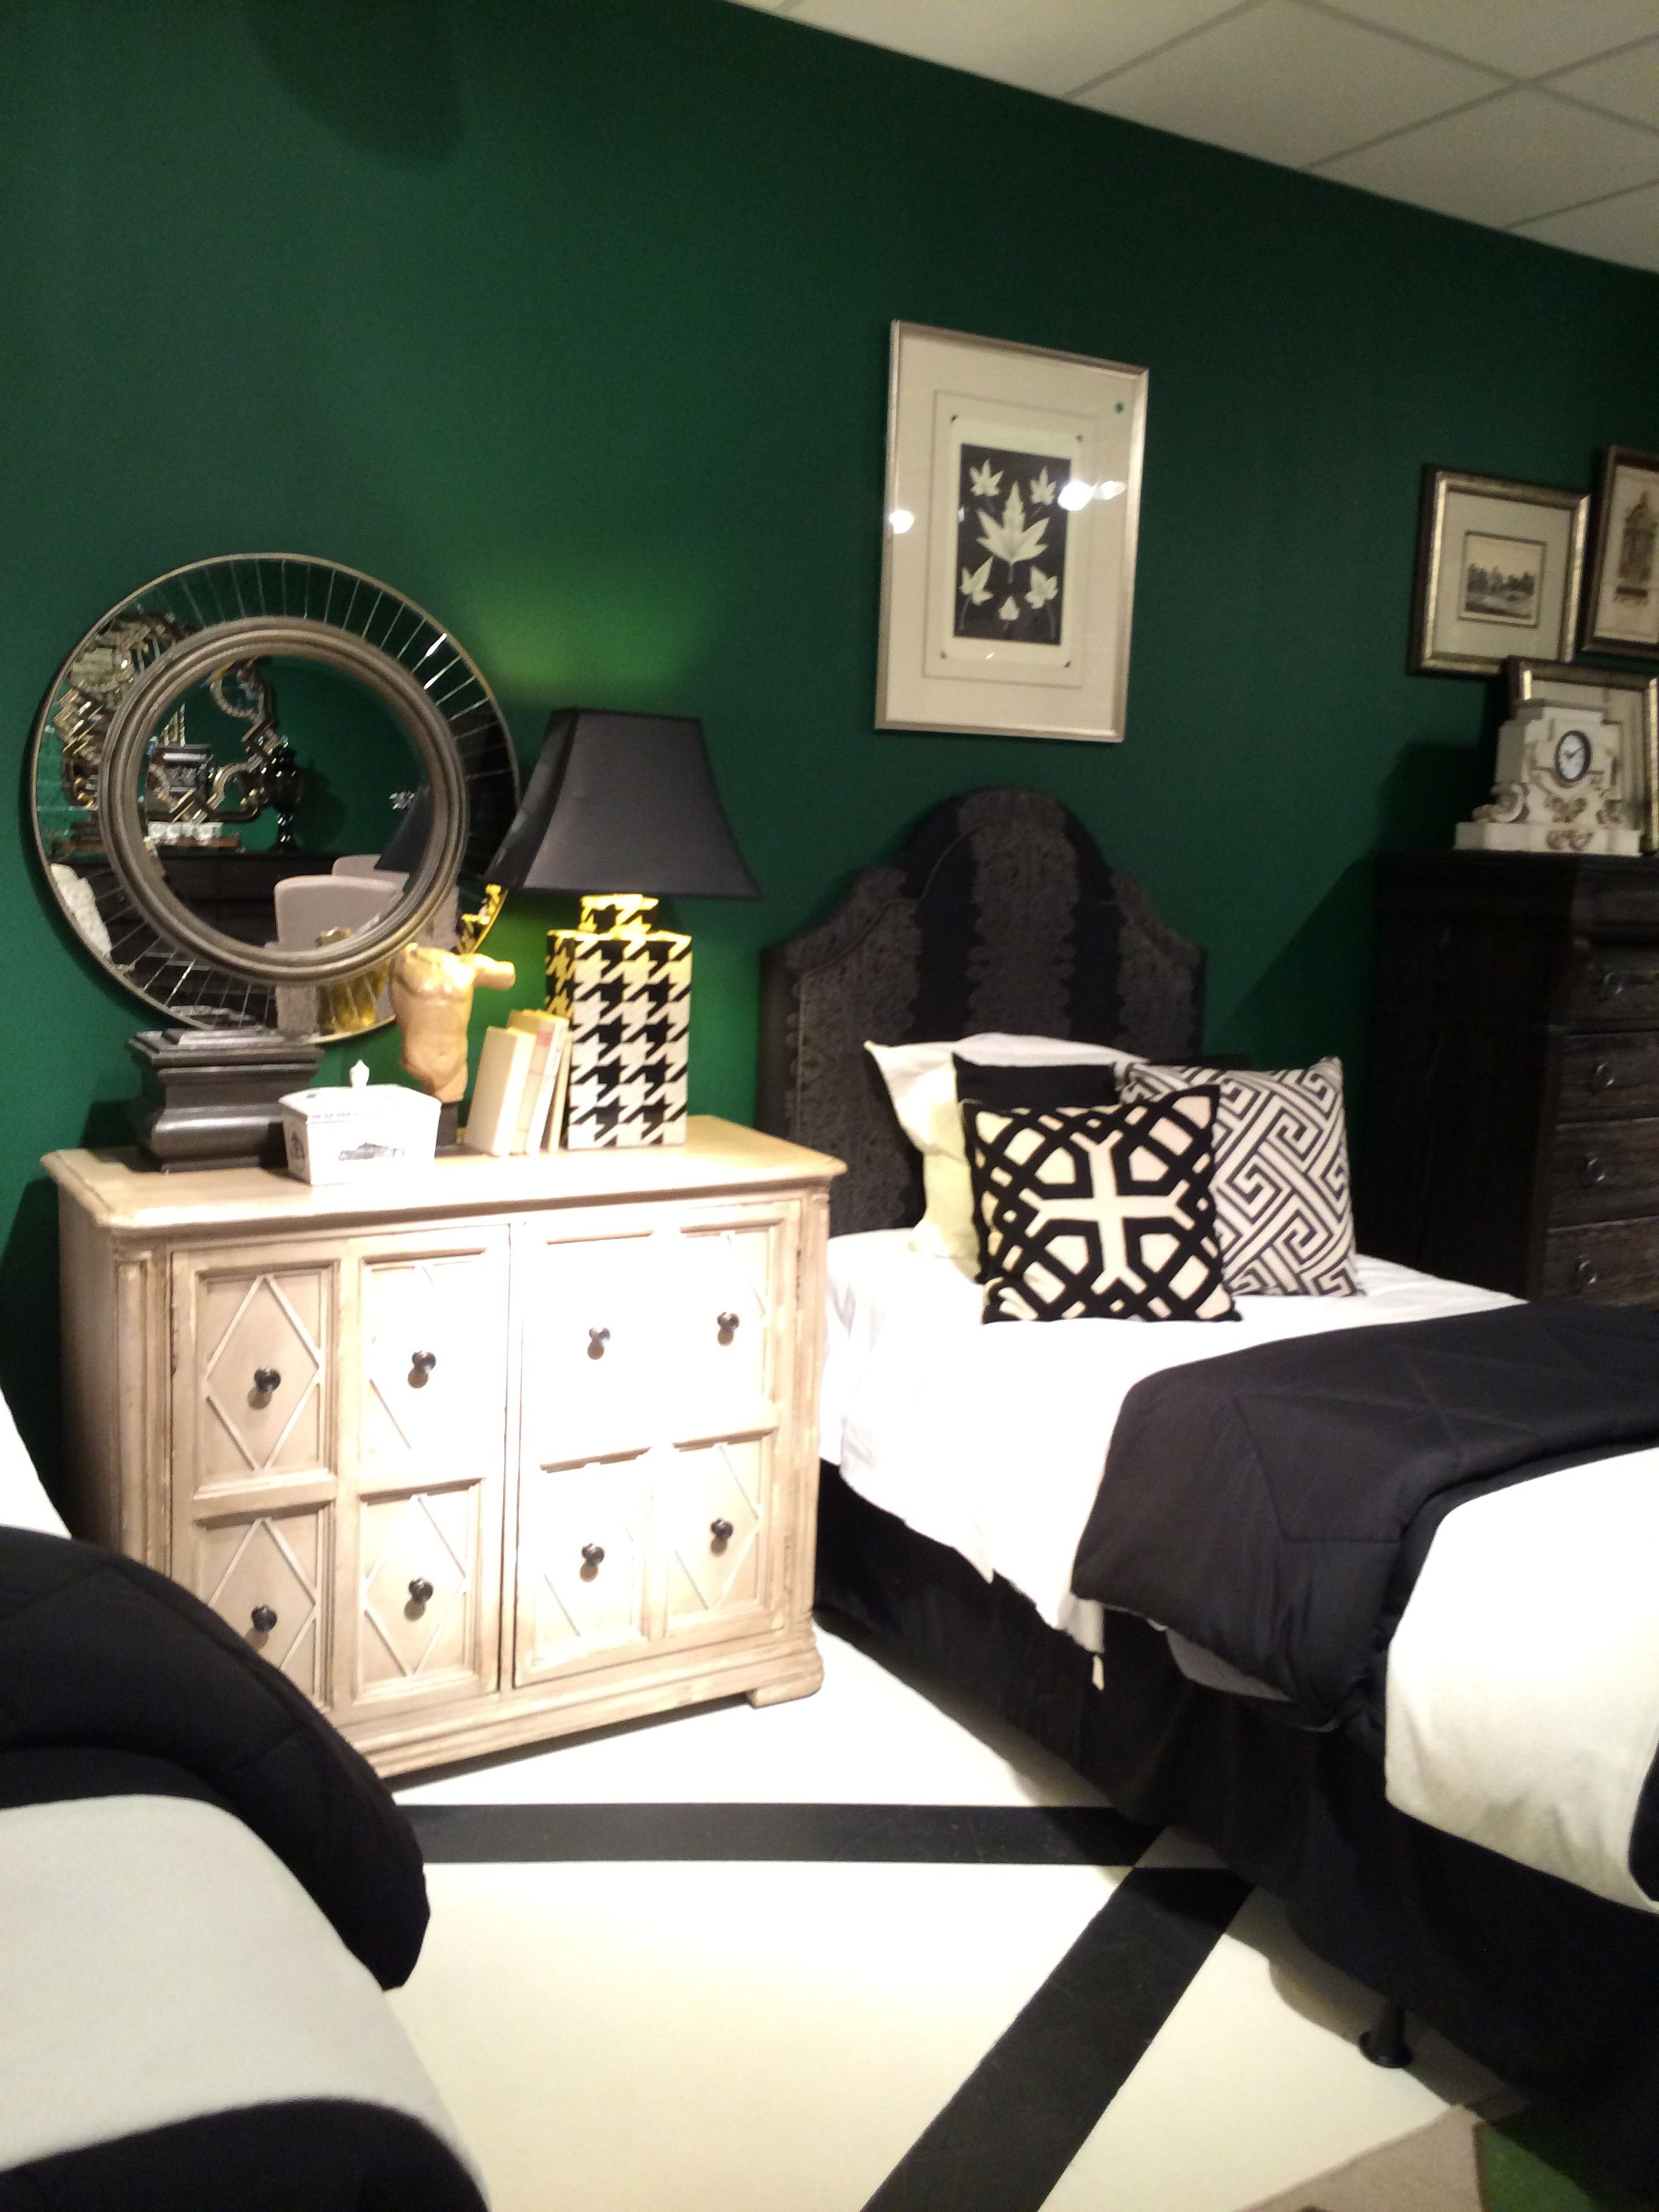 British Racing Green Walls Nicely Contrast With The White And